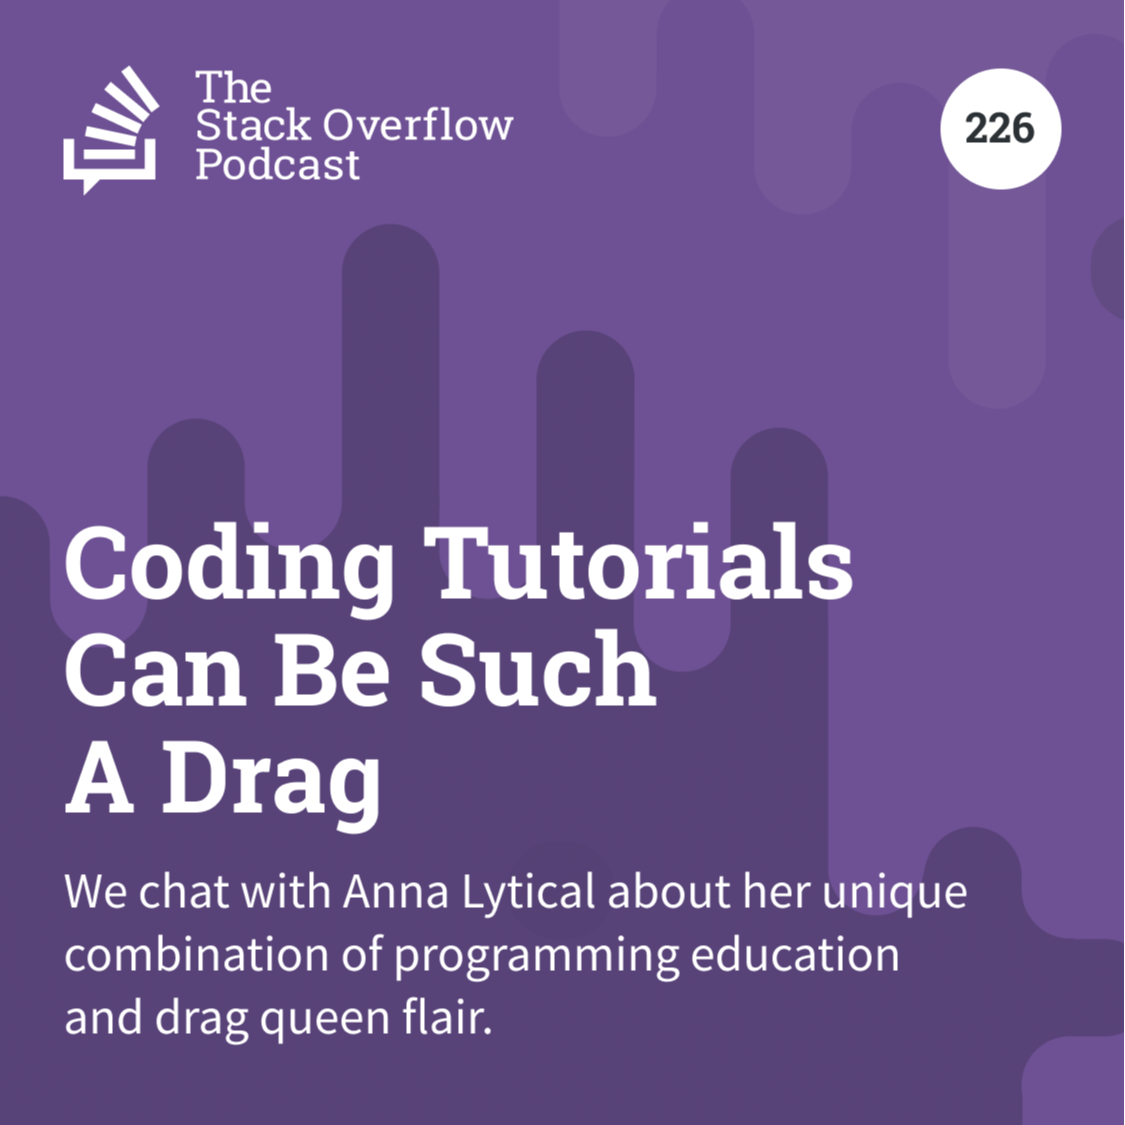 Podcast 226: Coding Tutorials Can Be Such A Drag